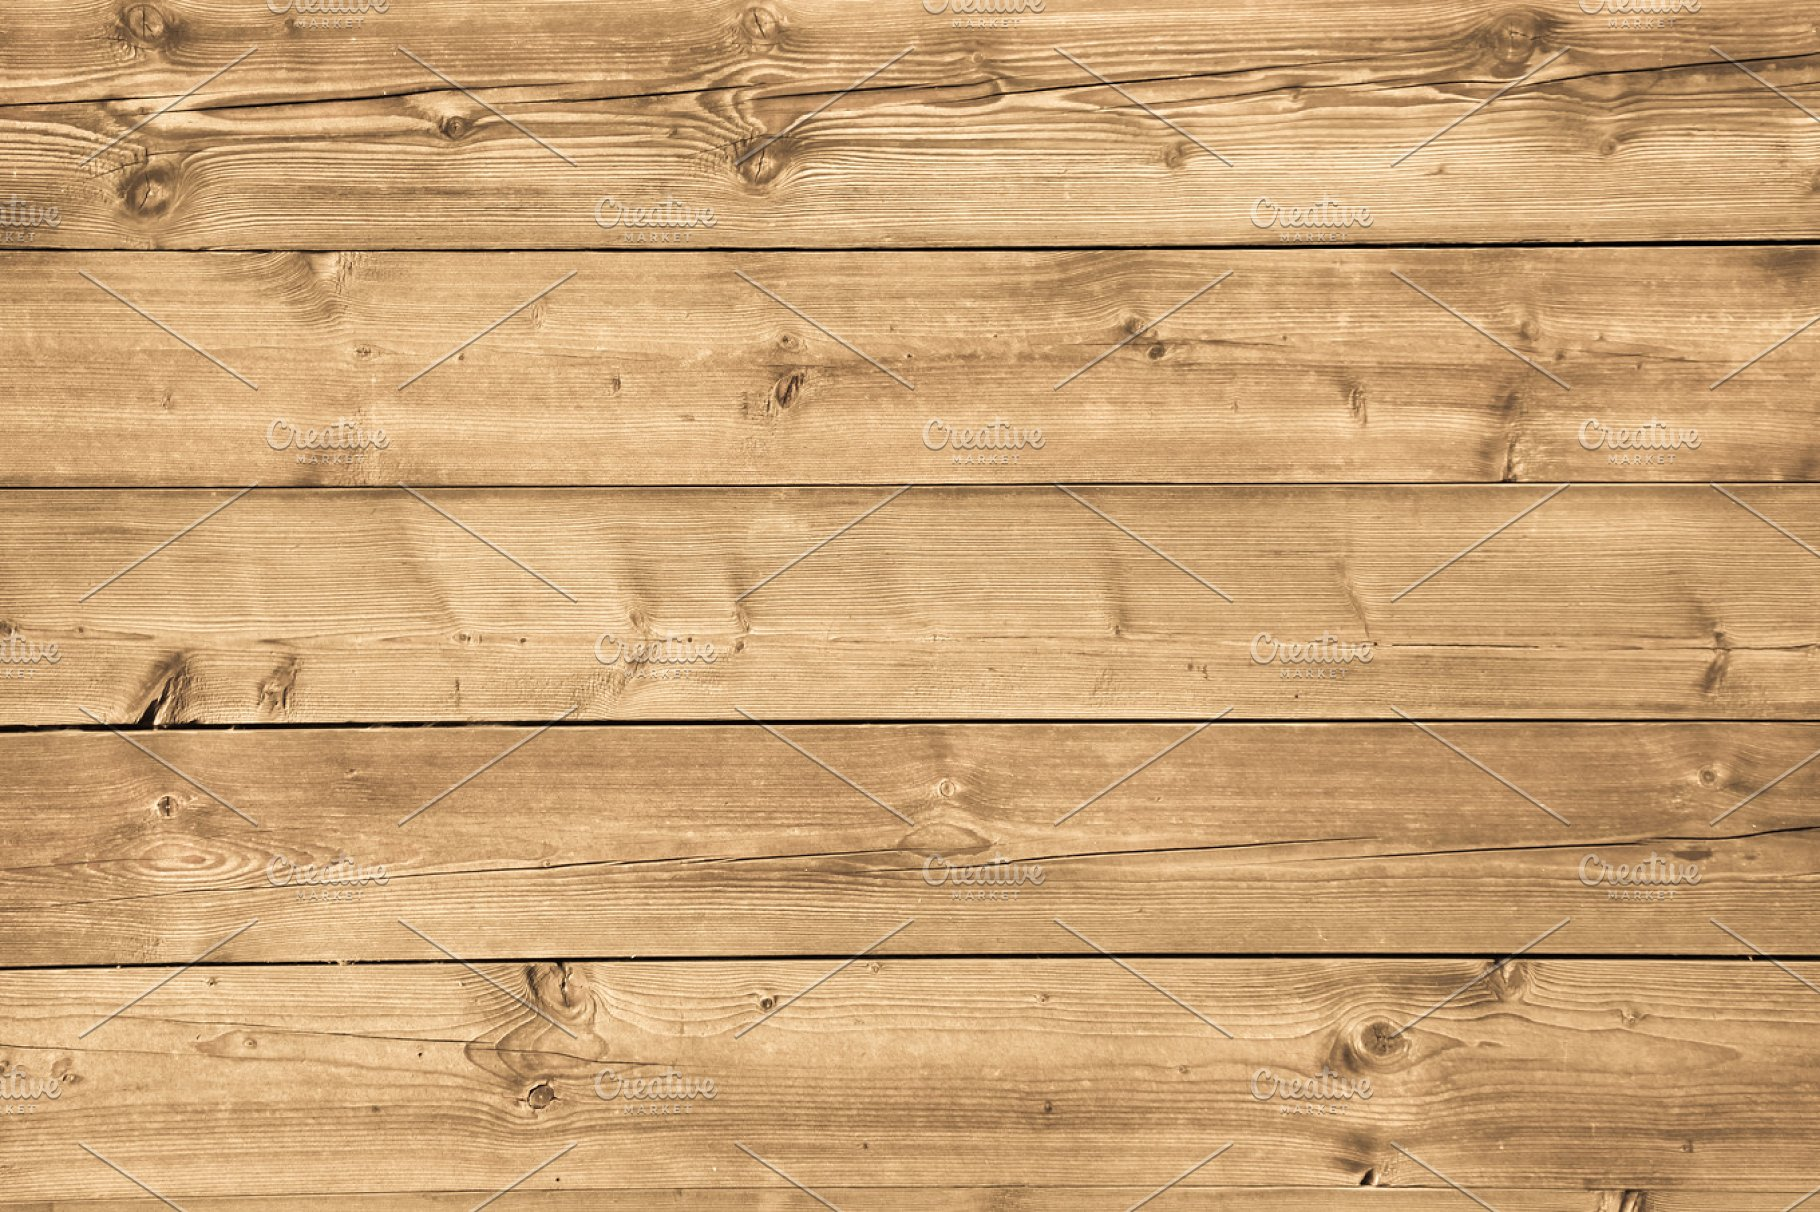 Vintage Wood Background Texture 123   High-Quality Abstract Stock Photos ~ Creative Market